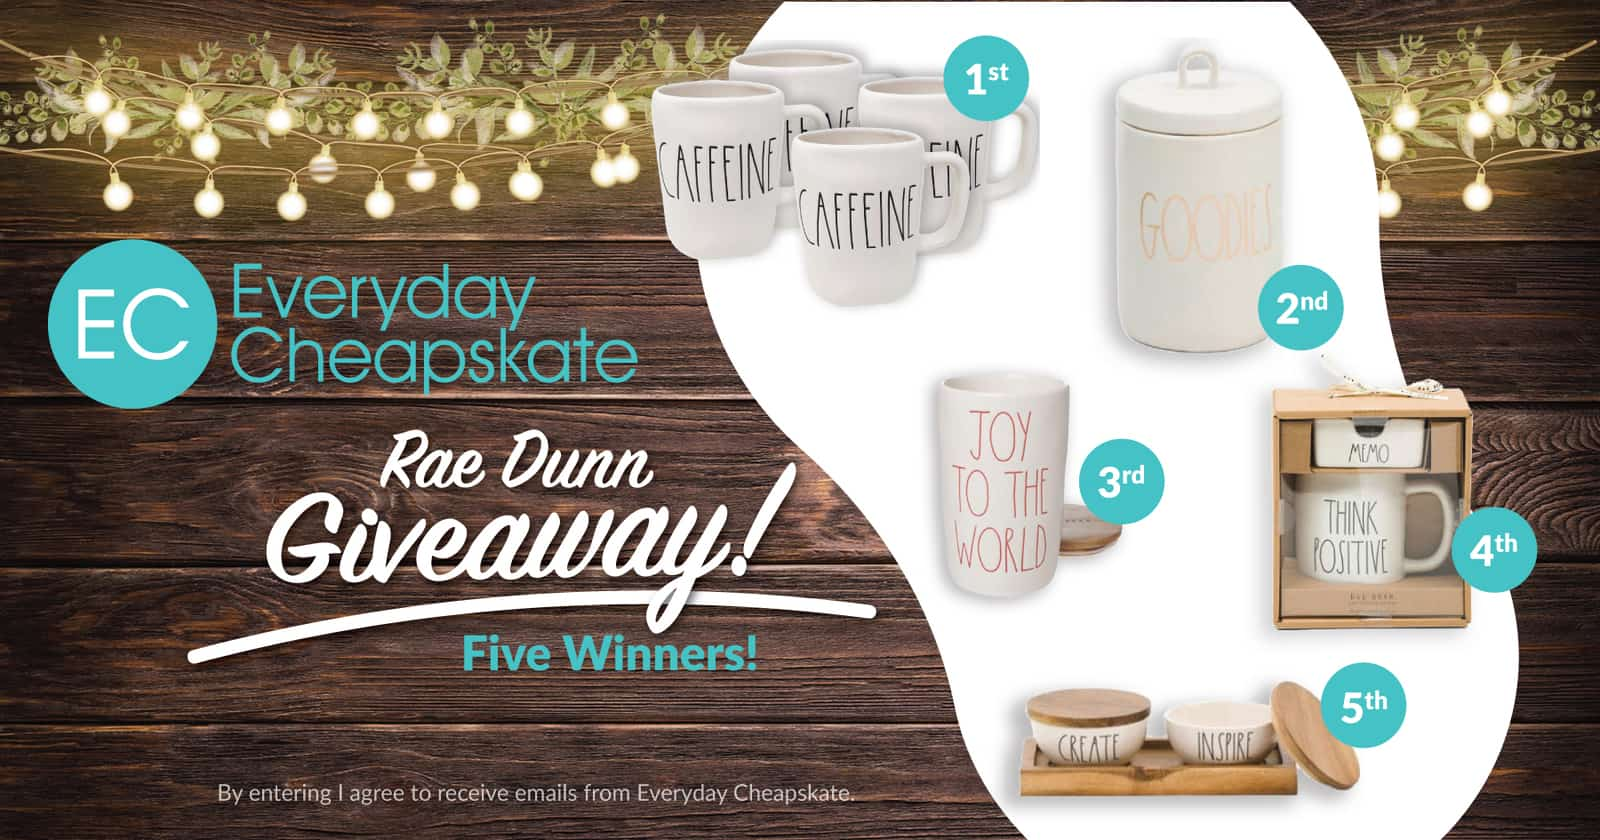 Rae Dunn GIVEAWAY!